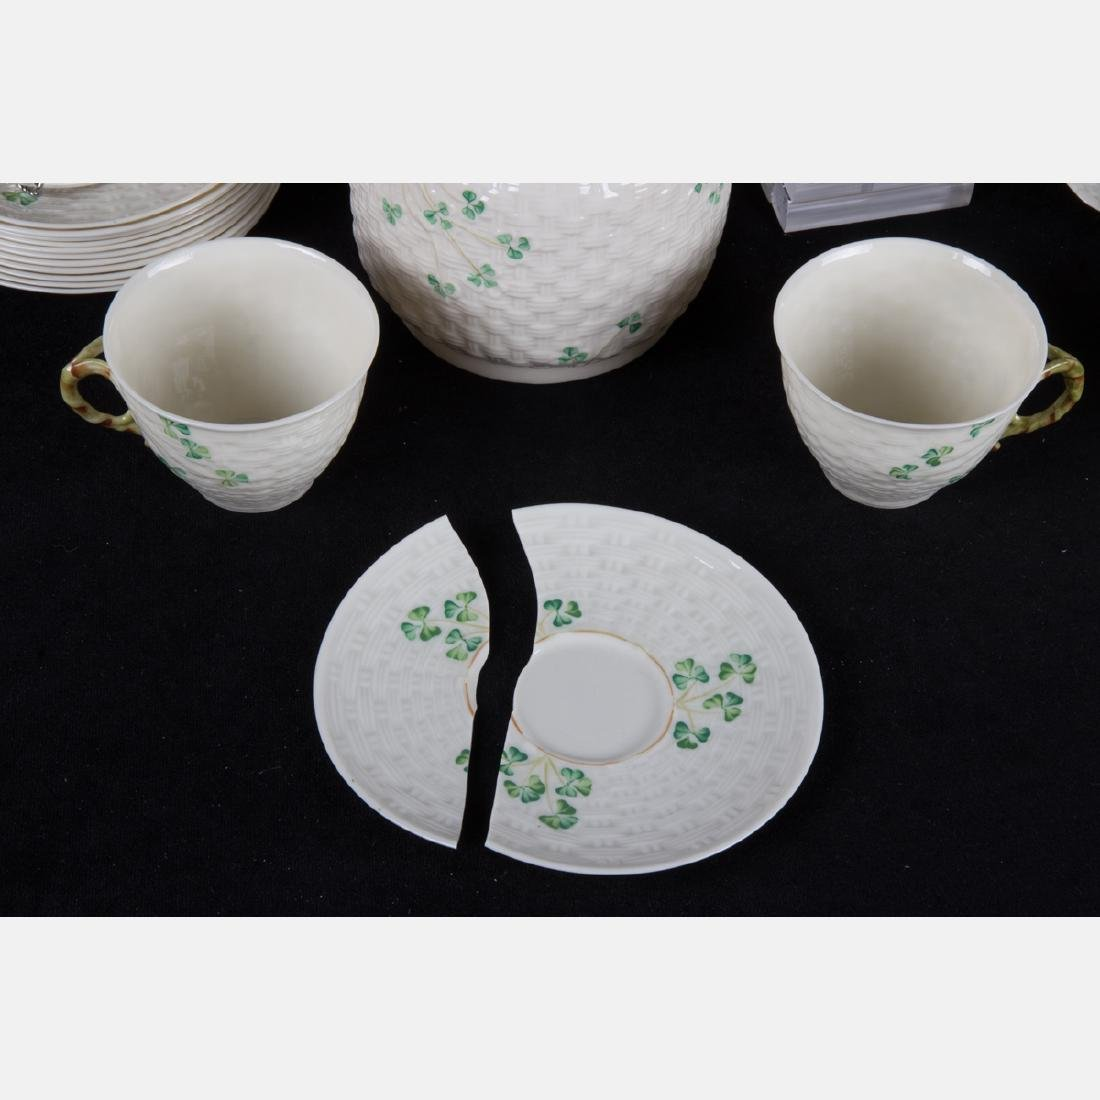 A Collection of Belleek Porcelain Serving and - 3